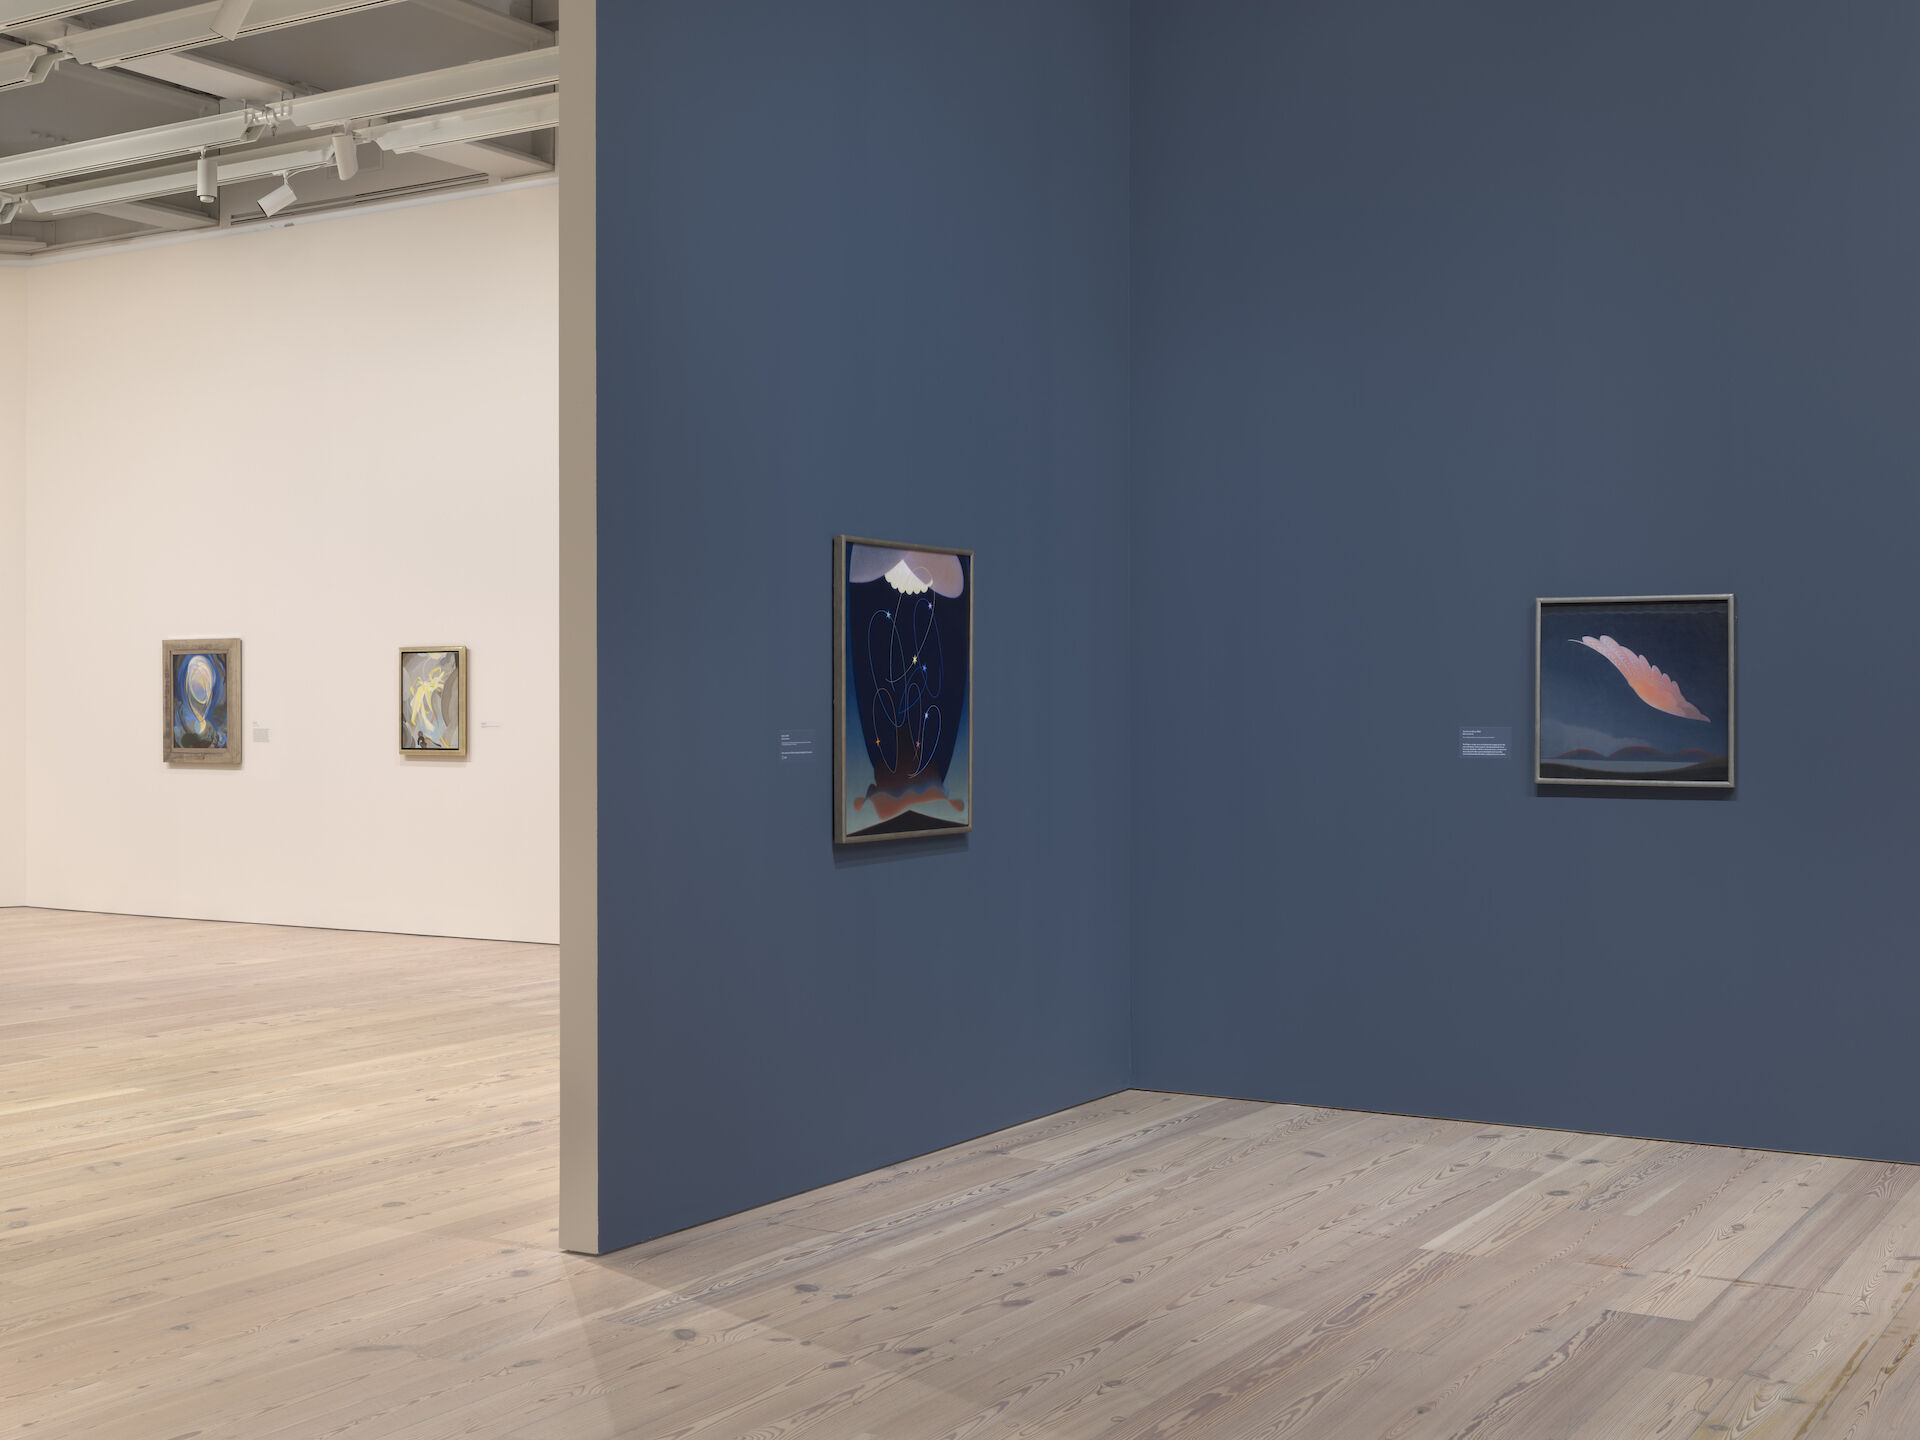 A white room appears further back to the left of a blue room. Two paintings are visible in each room in the exhibition, Agnes Pelton: Desert Transcendentalist. The work from left to right is: Being, 1926; Ecstasy, 1928; Orbits, 1934; and The Primal Wing, 1933.